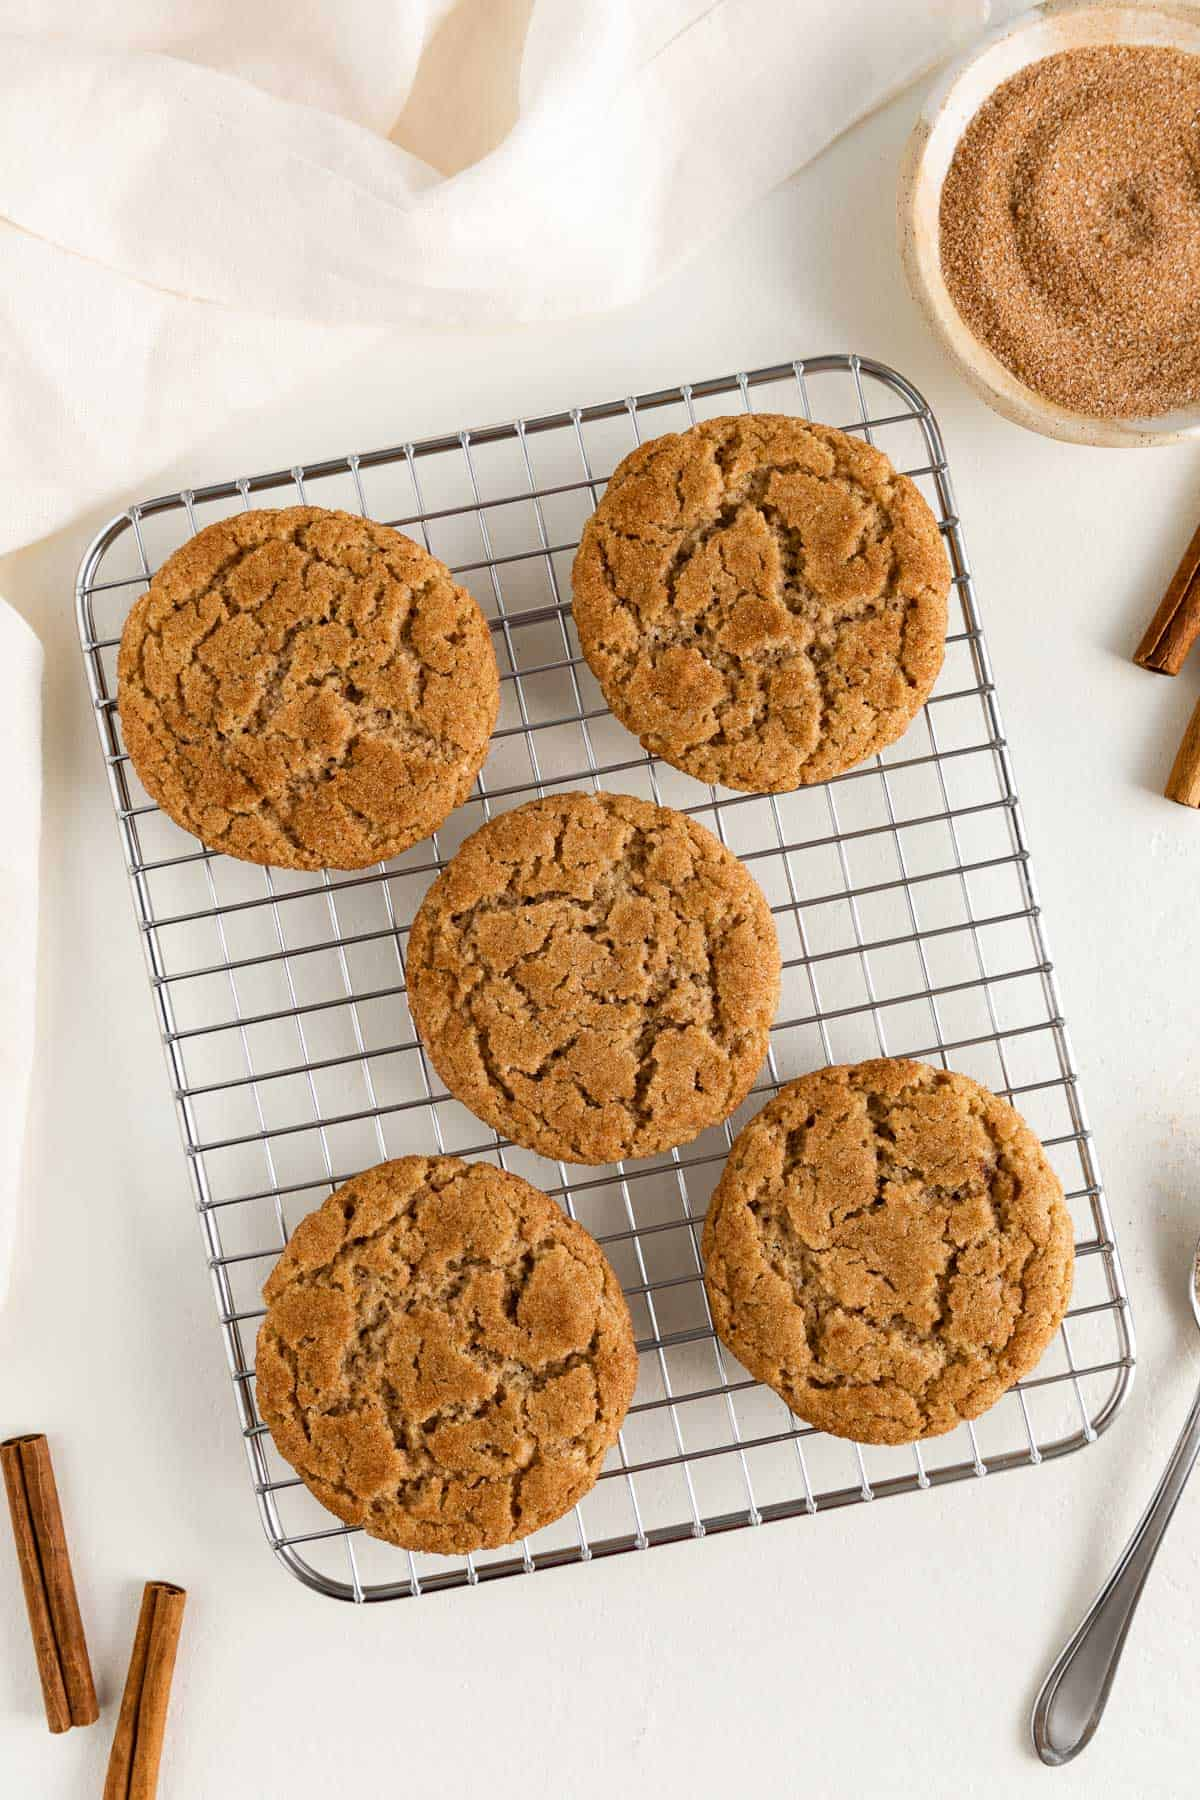 five vegan snickerdoodle cookies resting on a wire cooling rack placed beside a bowl of cinnamon sugar, cinnamon sticks, and a cream colored linen napkin